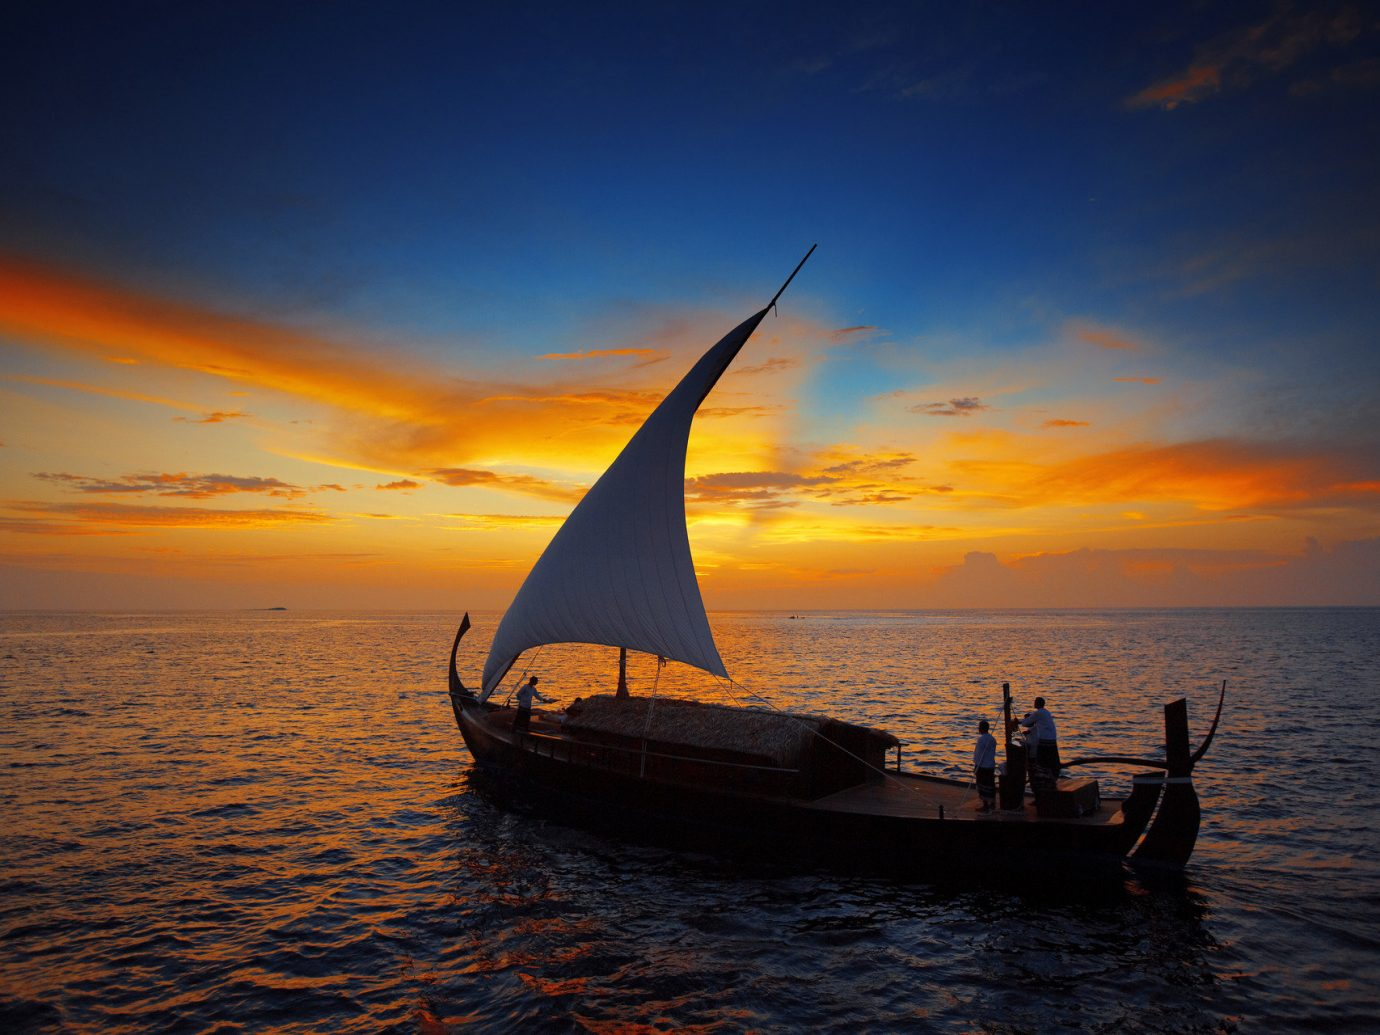 Boat calm isolation Luxury Ocean orange sky people private remote Romance Romantic sailboat serene silhouette Sunset Trip Ideas water sky outdoor transport watercraft Sea horizon sunrise vehicle evening cloud dusk morning Coast dawn sailing vessel Beach sail bay sunlight wave sailing ship distance